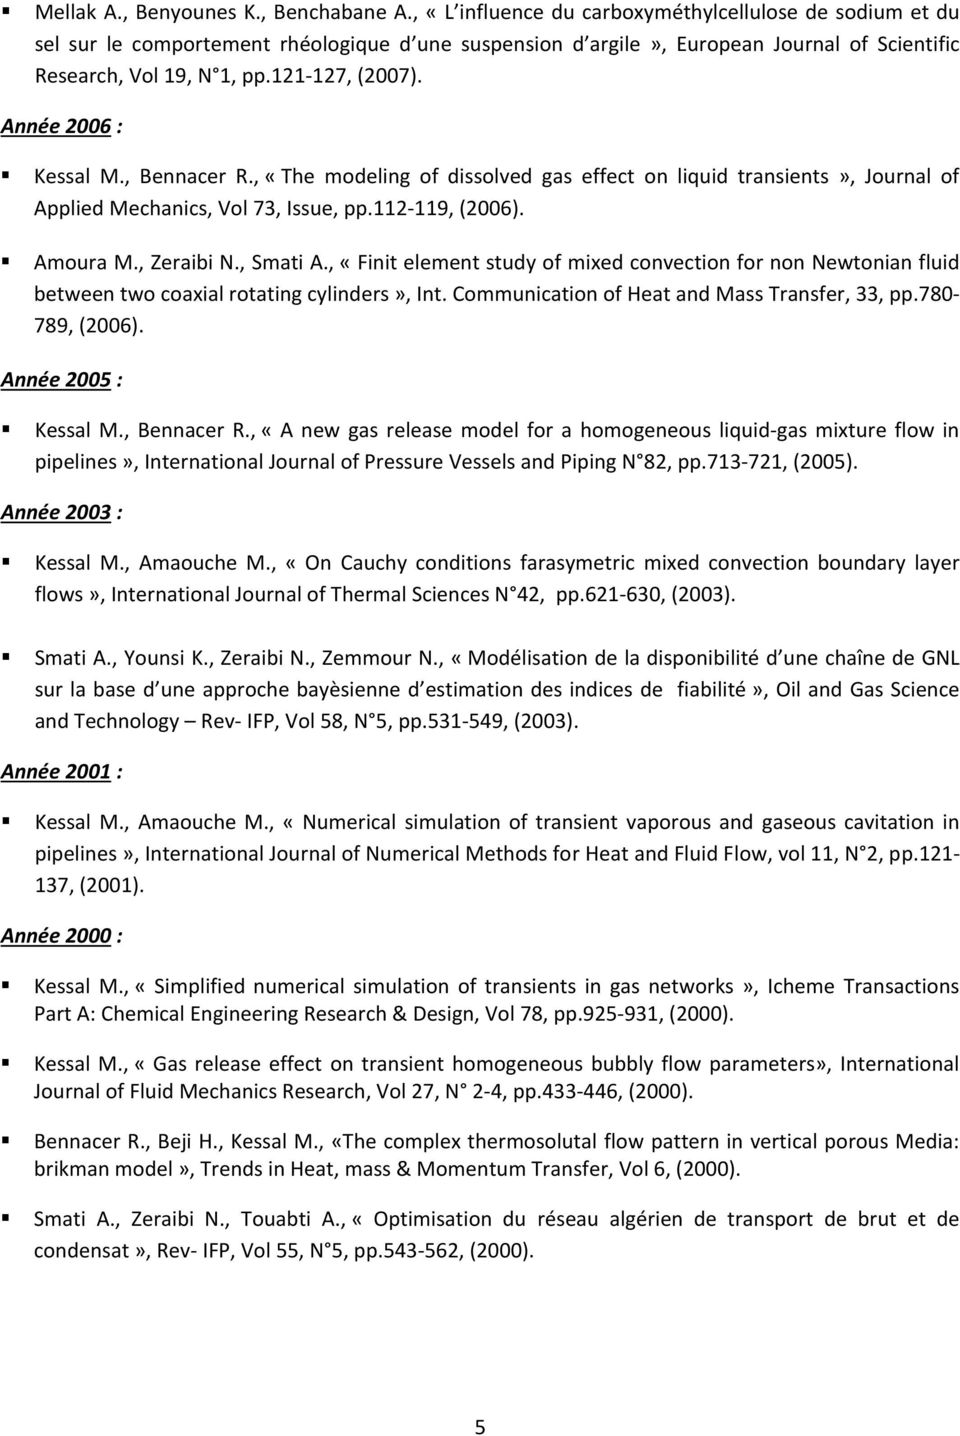 Année 2006 : Kessal M., Bennacer R., «The modeling of dissolved gas effect on liquid transients», Journal of Applied Mechanics, Vol 73, Issue, pp.112-119, (2006). Amoura M., Zeraibi N., Smati A.